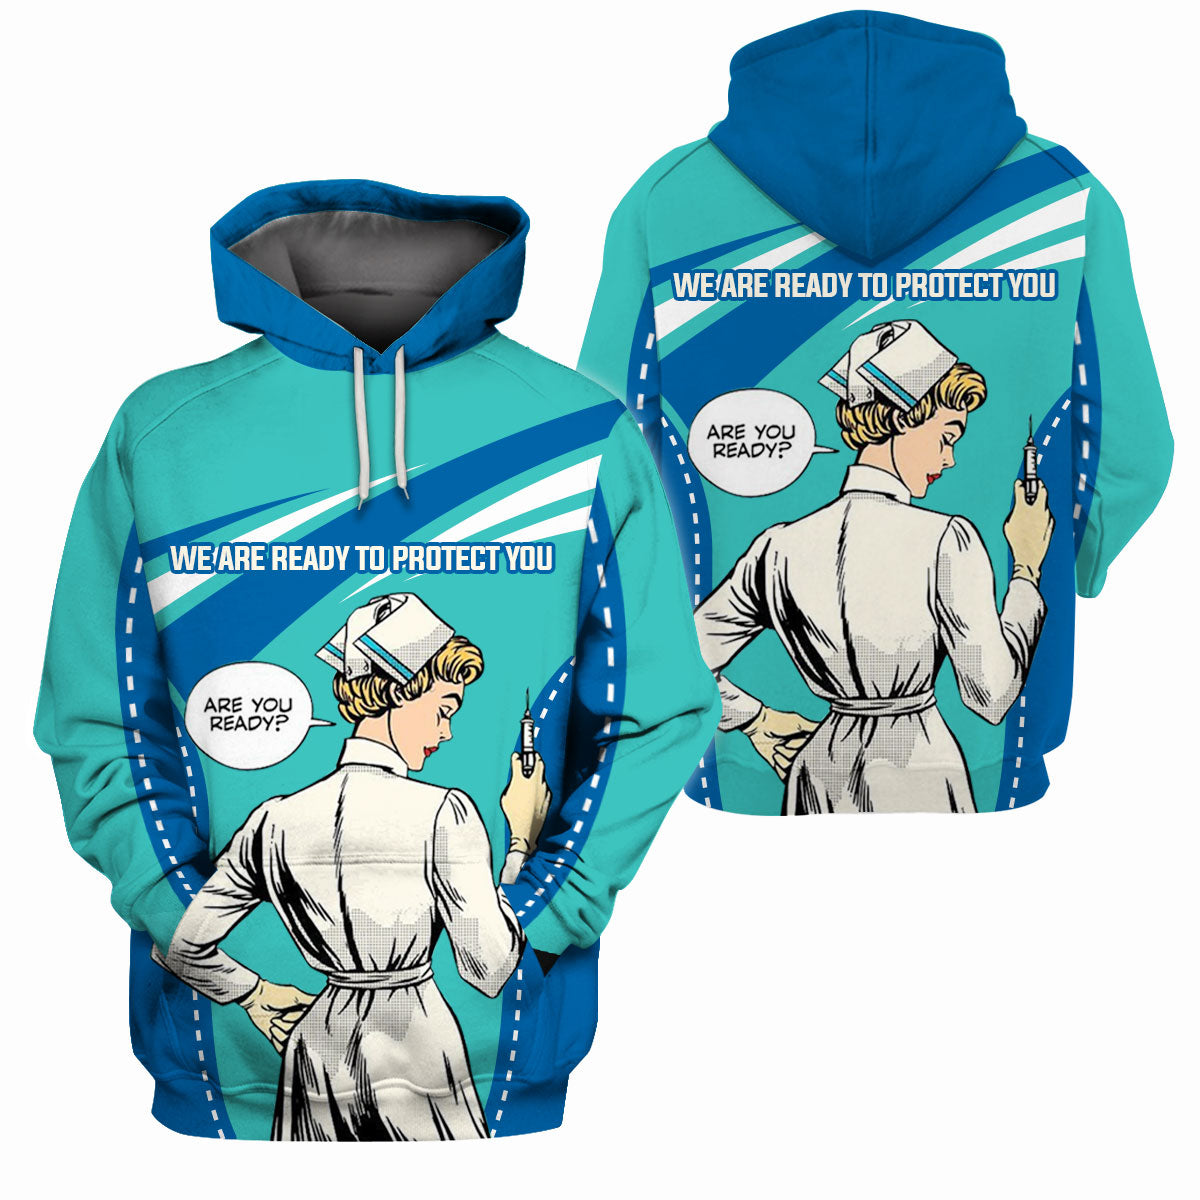 Nurse Clothing - All Over 3D Printed - We Are Ready To Protect You - GnWarriors Clothing